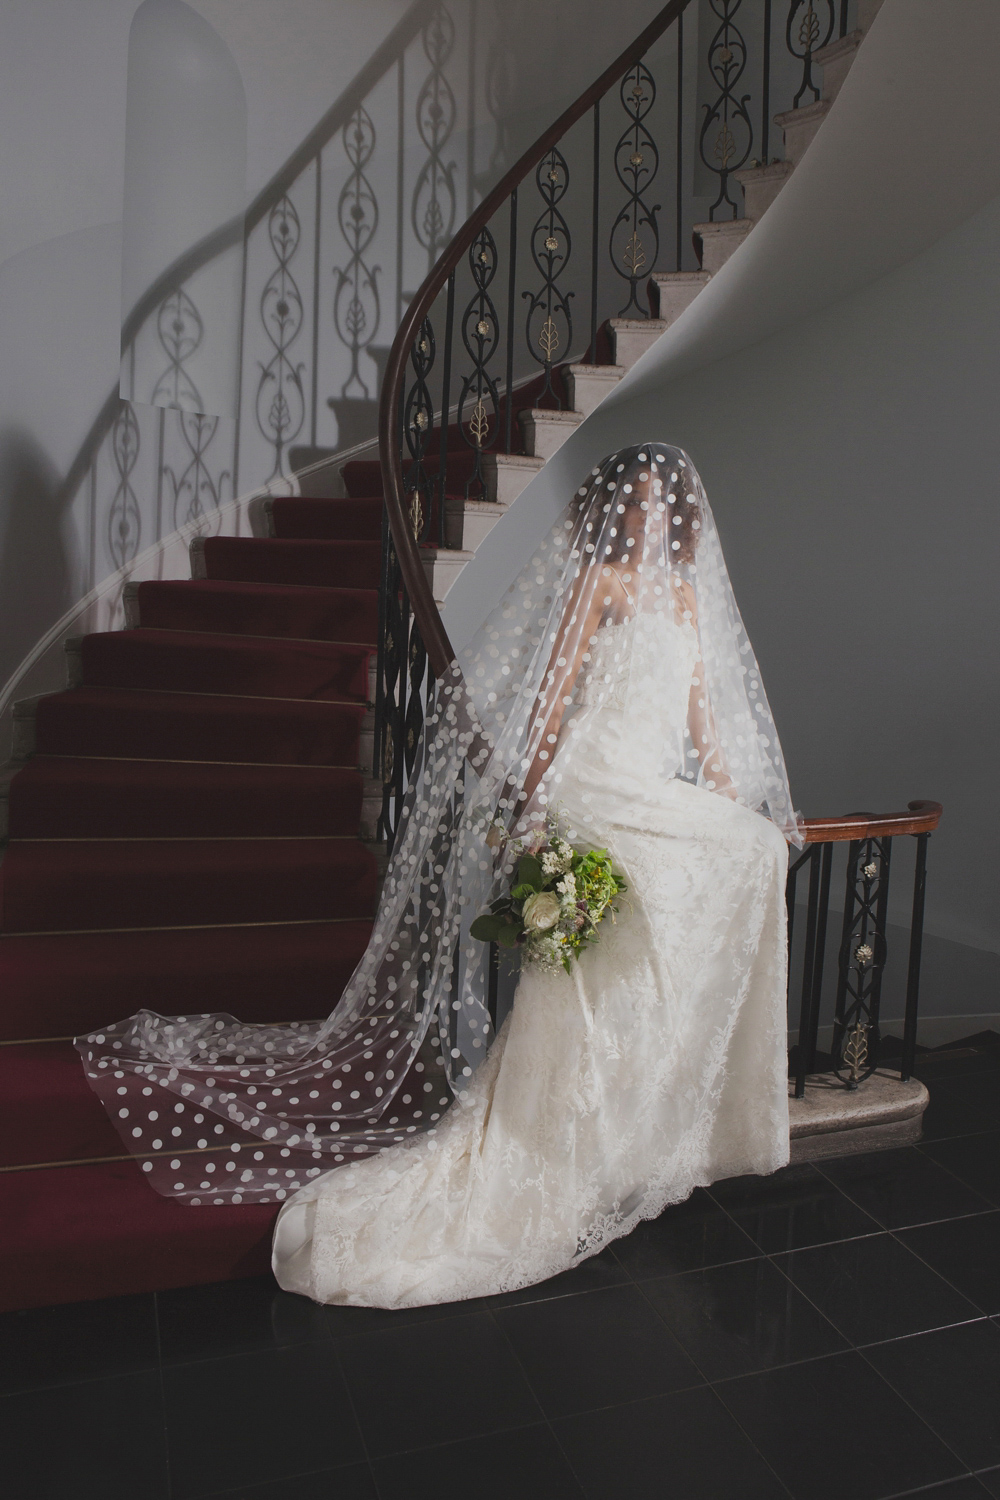 Exquisite, Elegant Wedding Veils From Halfpenny London